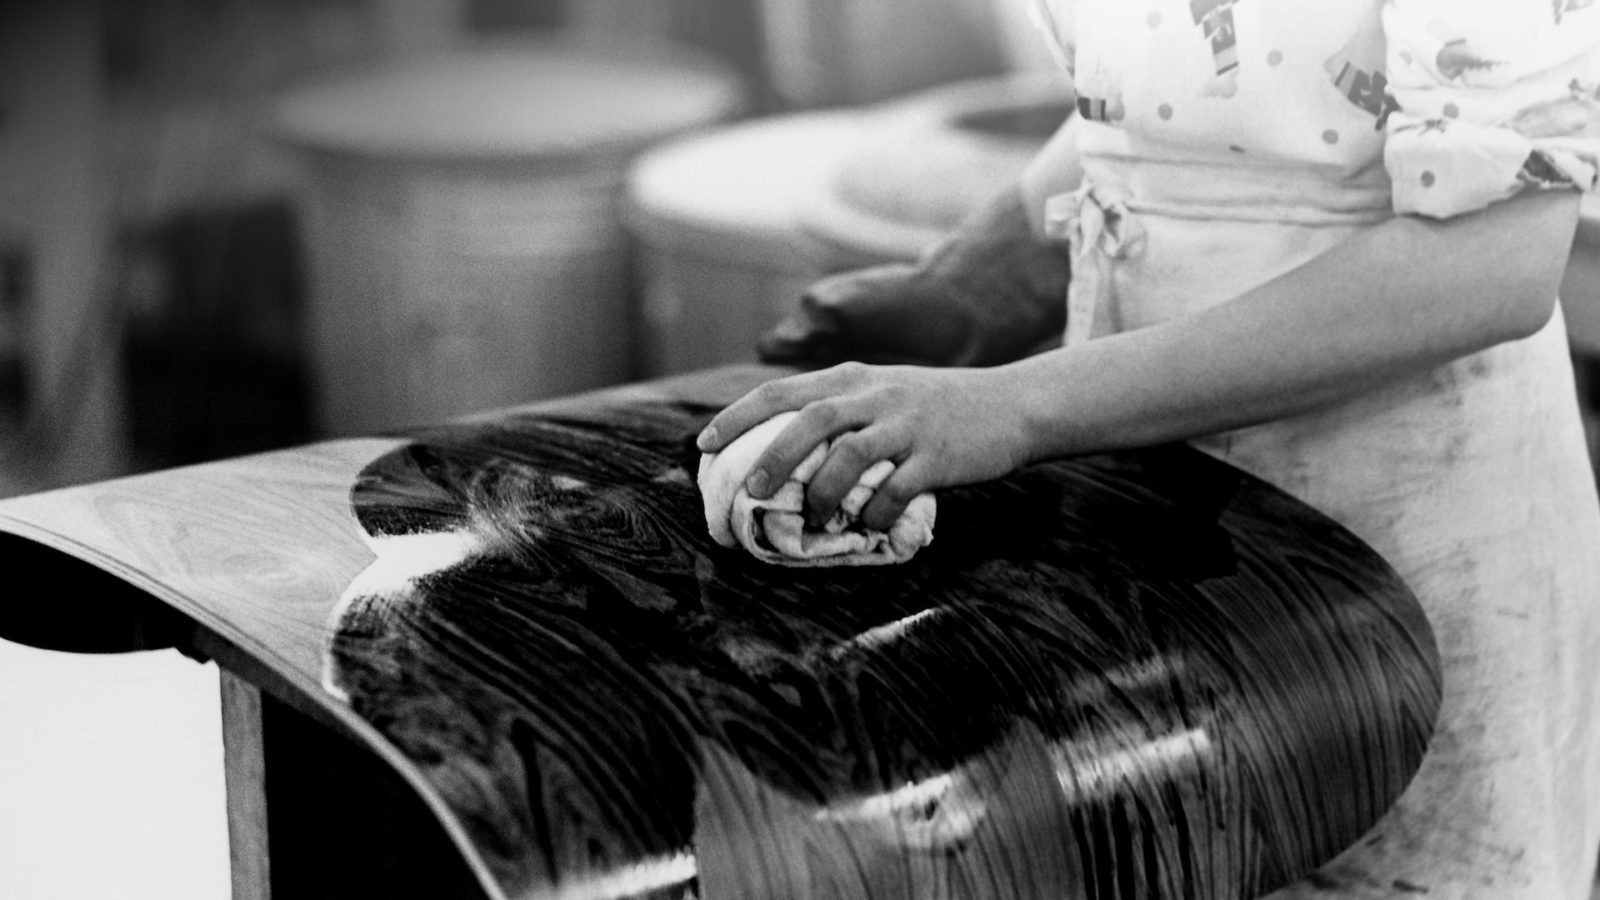 Image of someone cleaning the bottom of an Eames lounge chair.